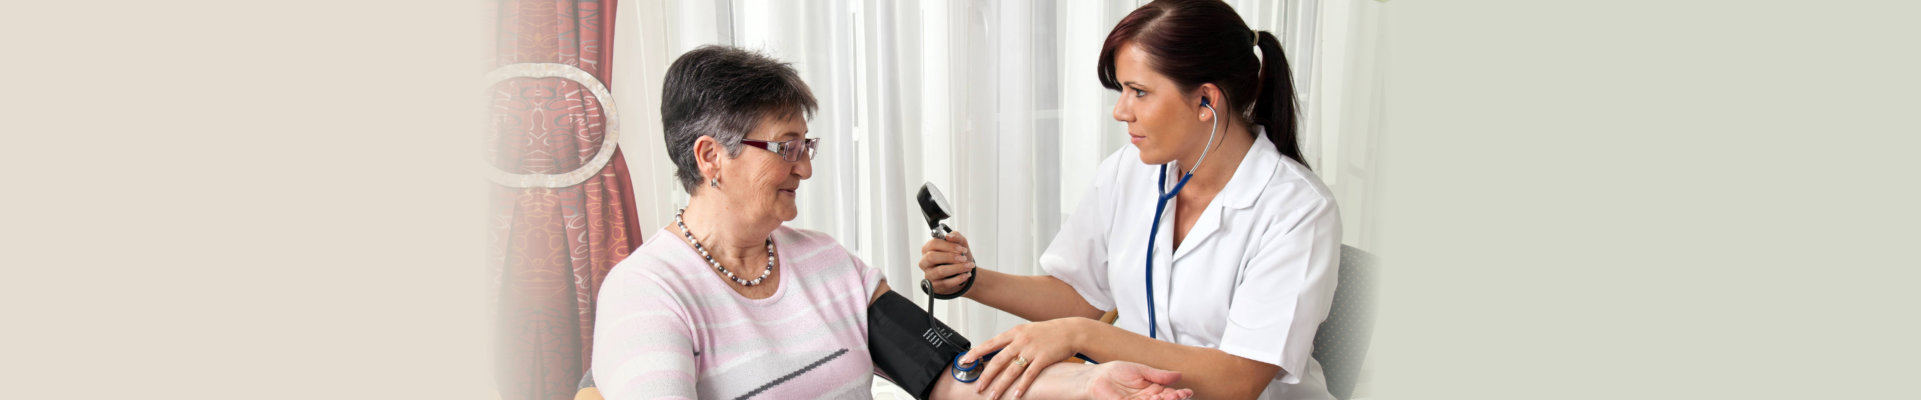 nurse checking her patient's blood pressure